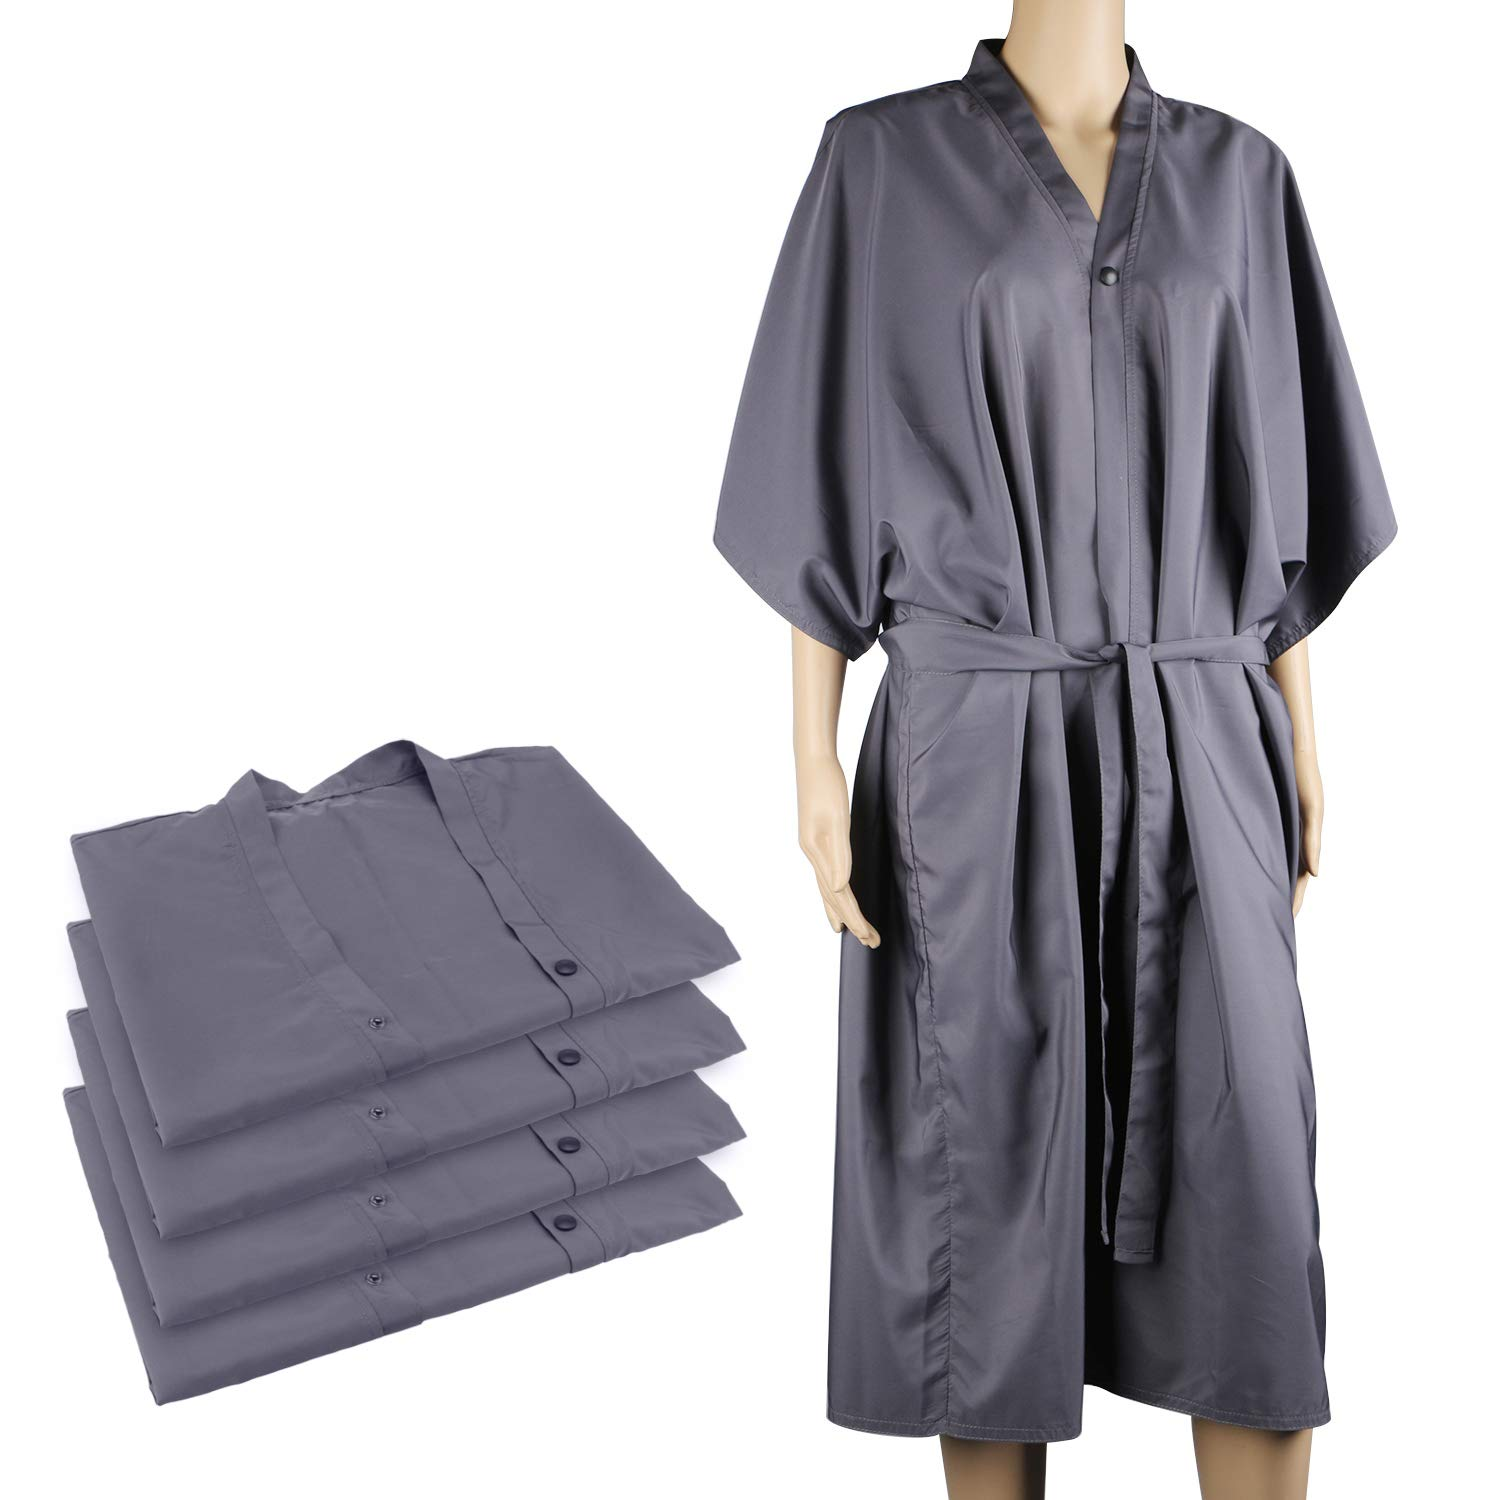 4packs Kimono Robes, Segbeauty 43 inches Long Lightweight Silky SPA Massage Robe, Smock Cape Dress Client Uniform Lab Gown for Beauty Salon Hair Makeup - Grey by Segbeauty